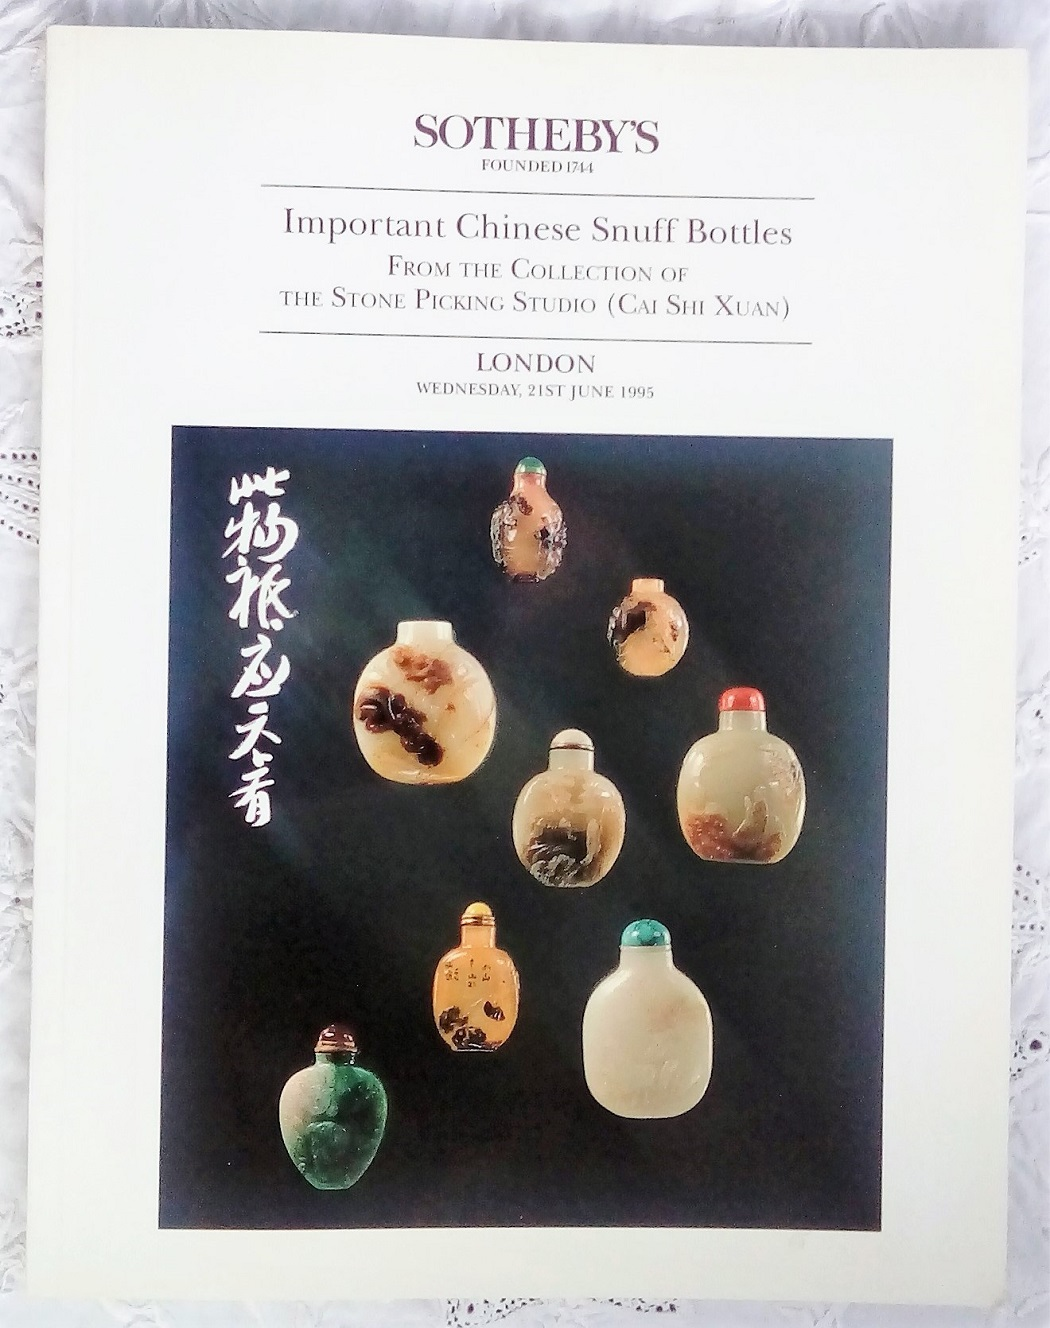 S STONE Important Chinese Snuff Bottles L 21. 06. 1995